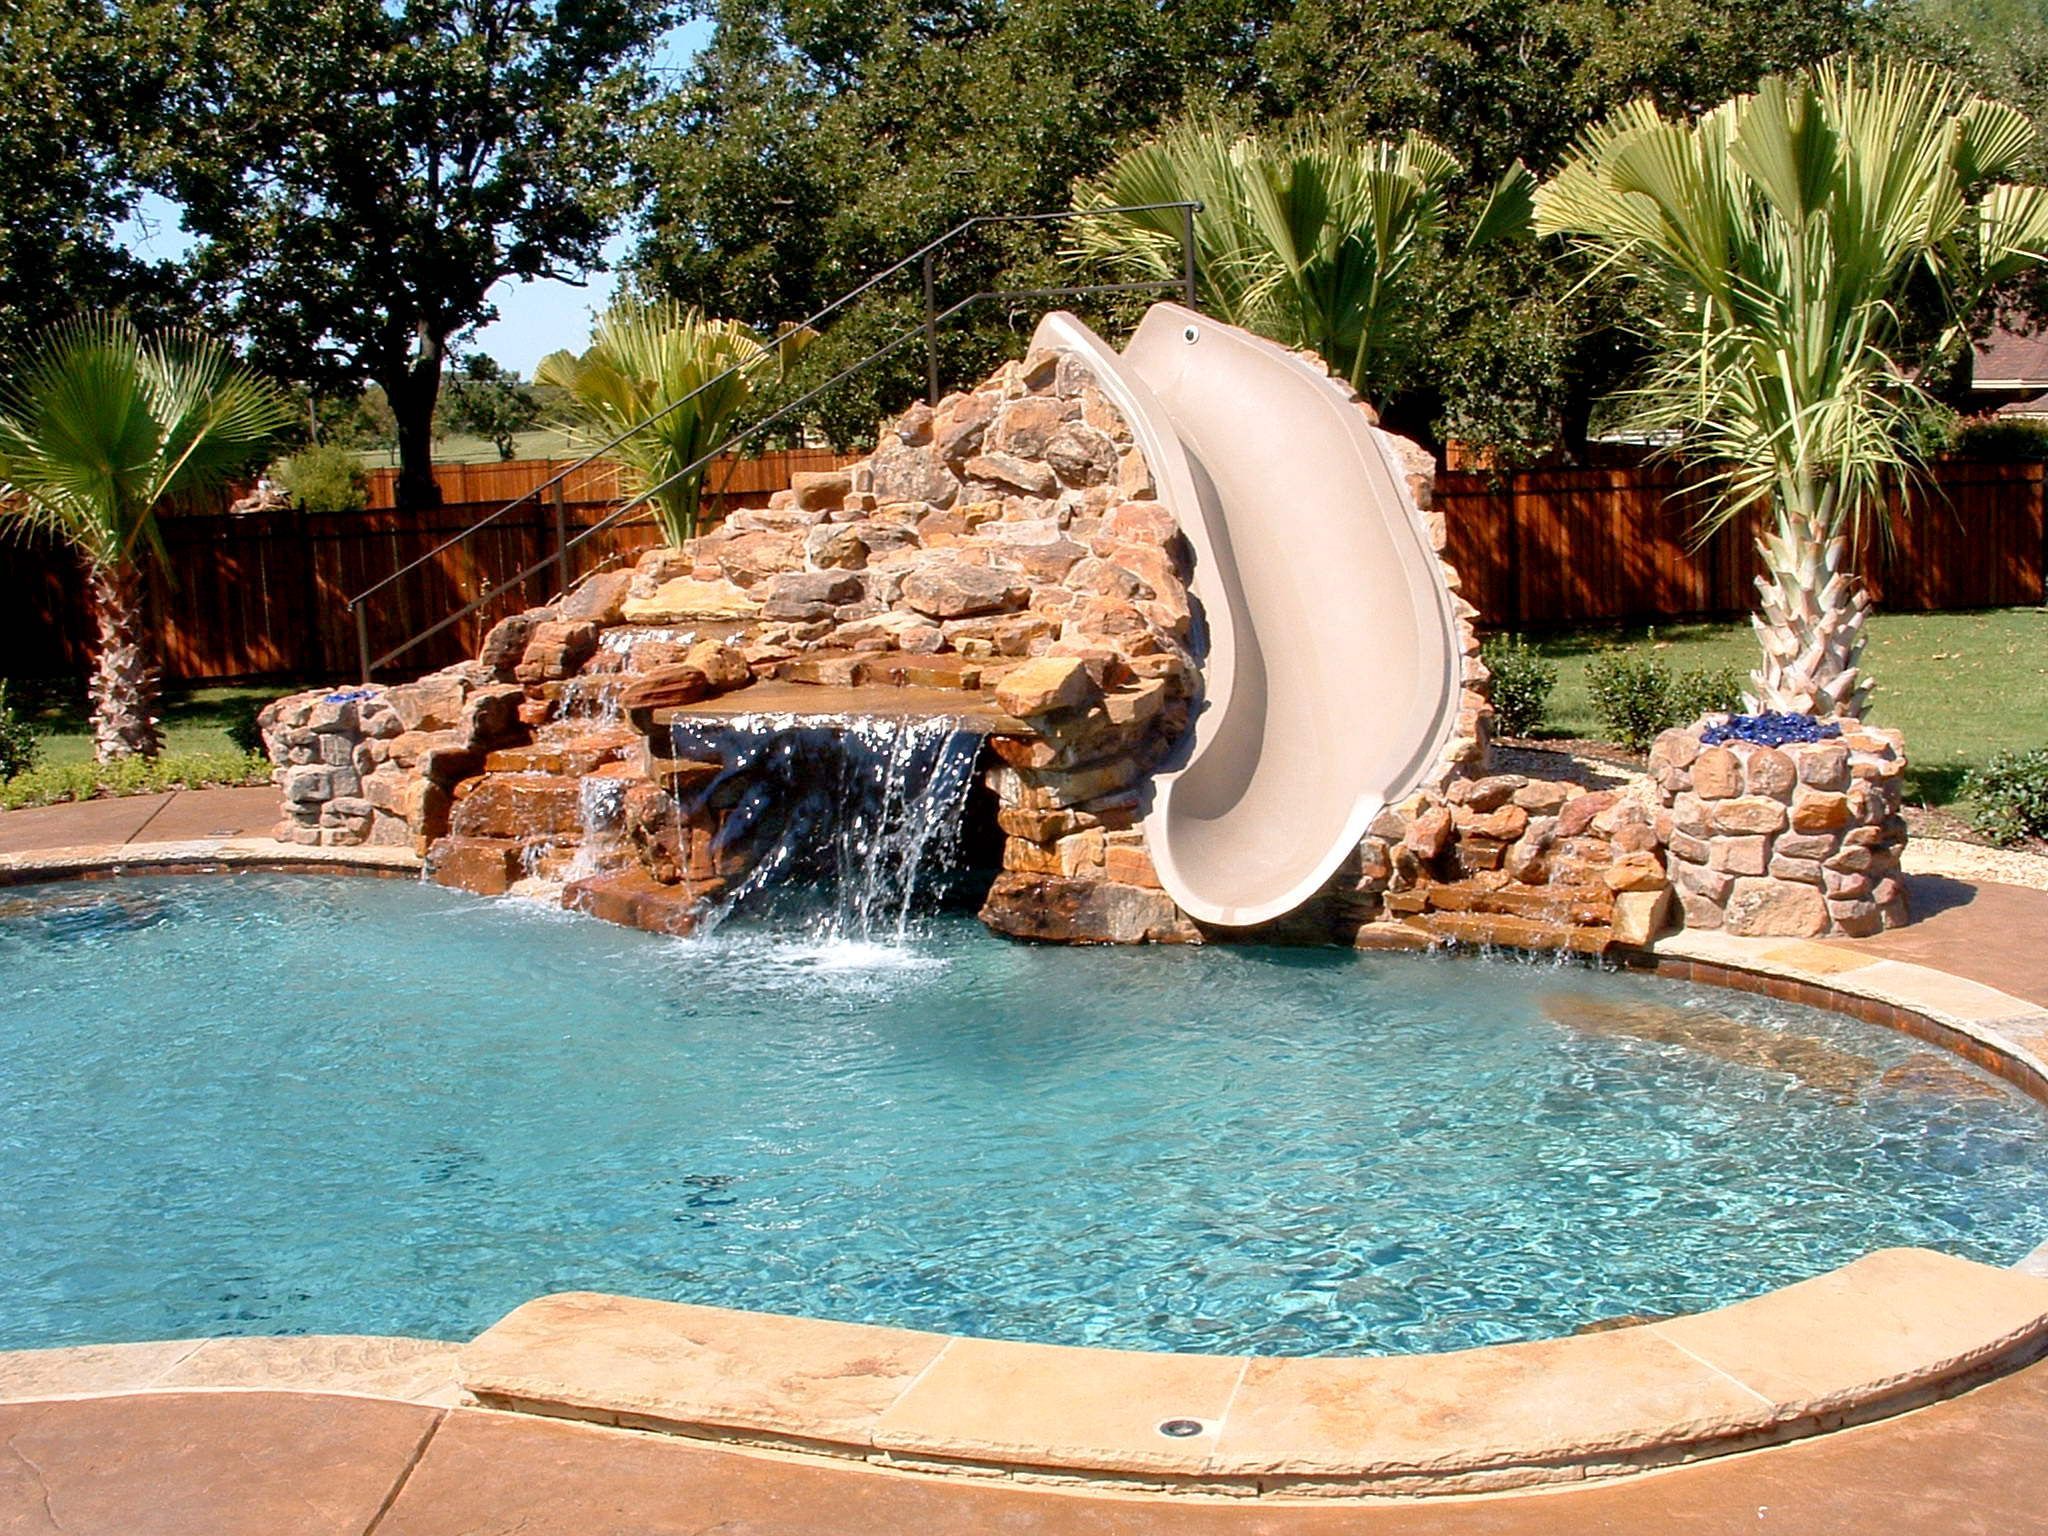 Luxurious Swimming Pools Designs With Varieties Swimming Pool Designs Small Swimming Pools Small Pool Design